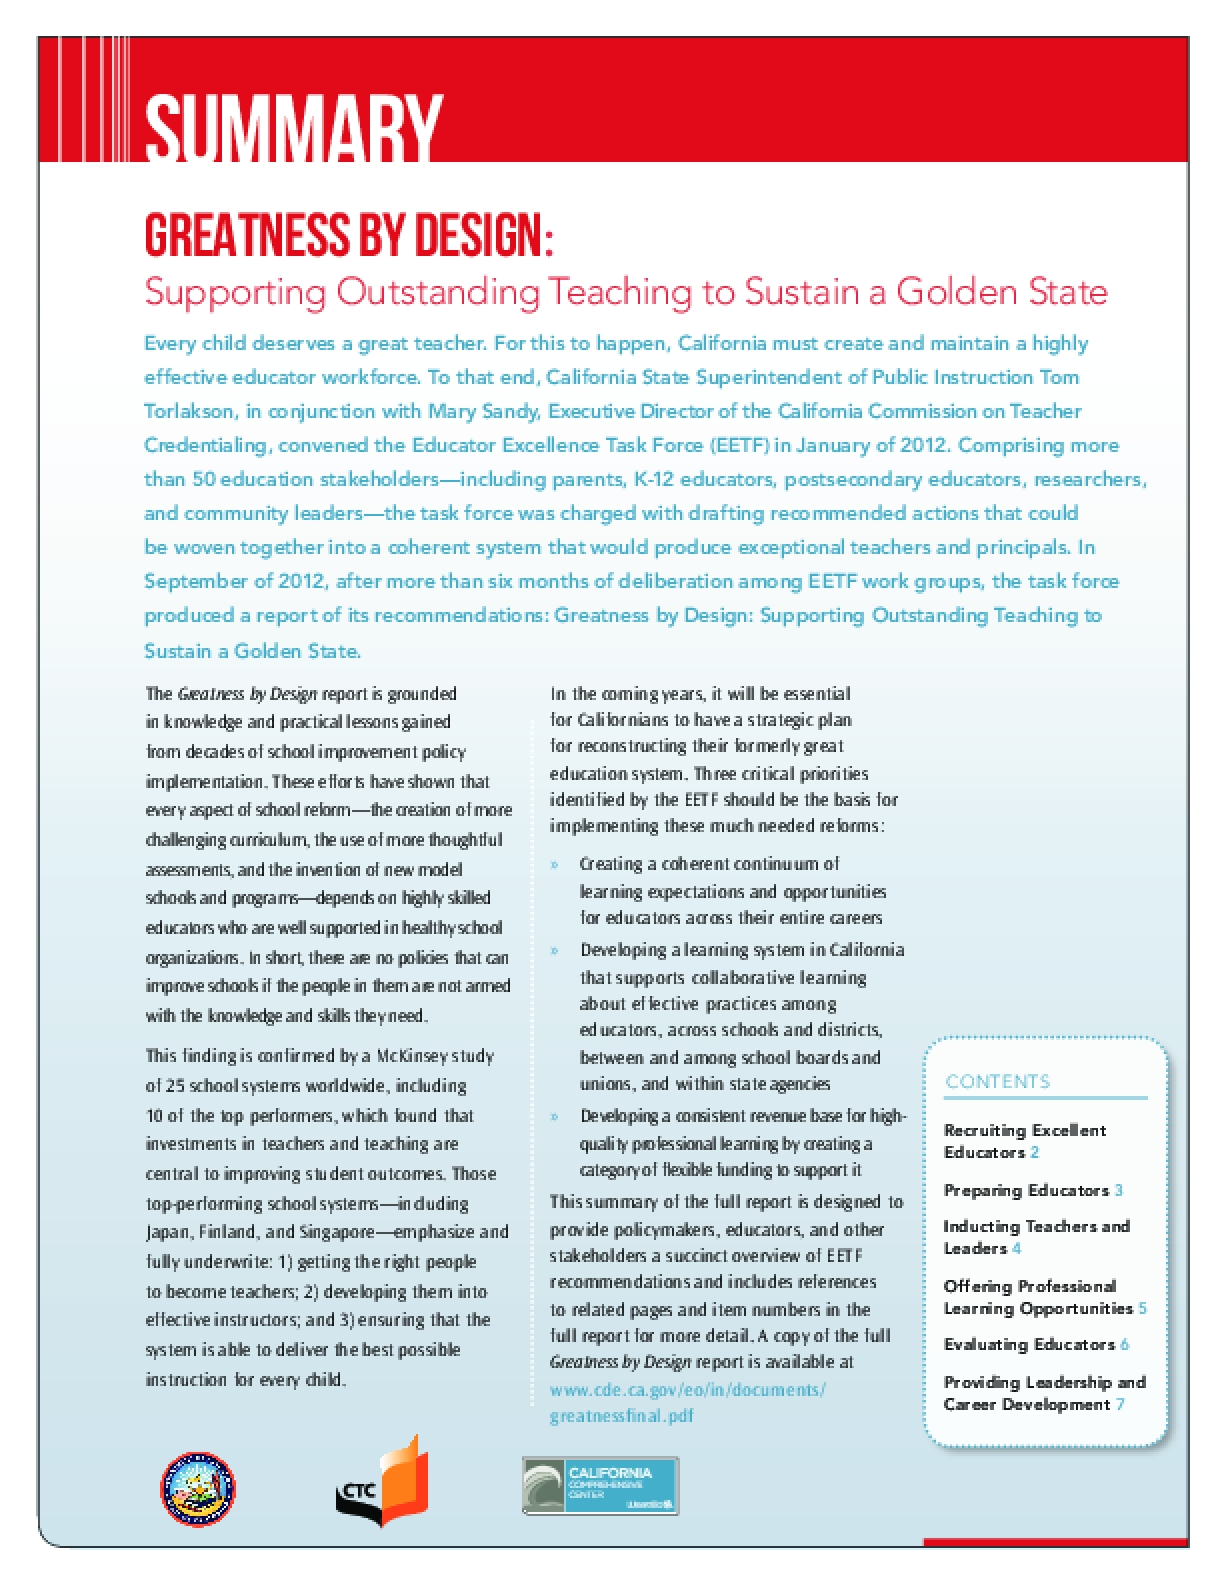 Greatness by Design: Supporting Outstanding Teaching to Sustain a Golden State